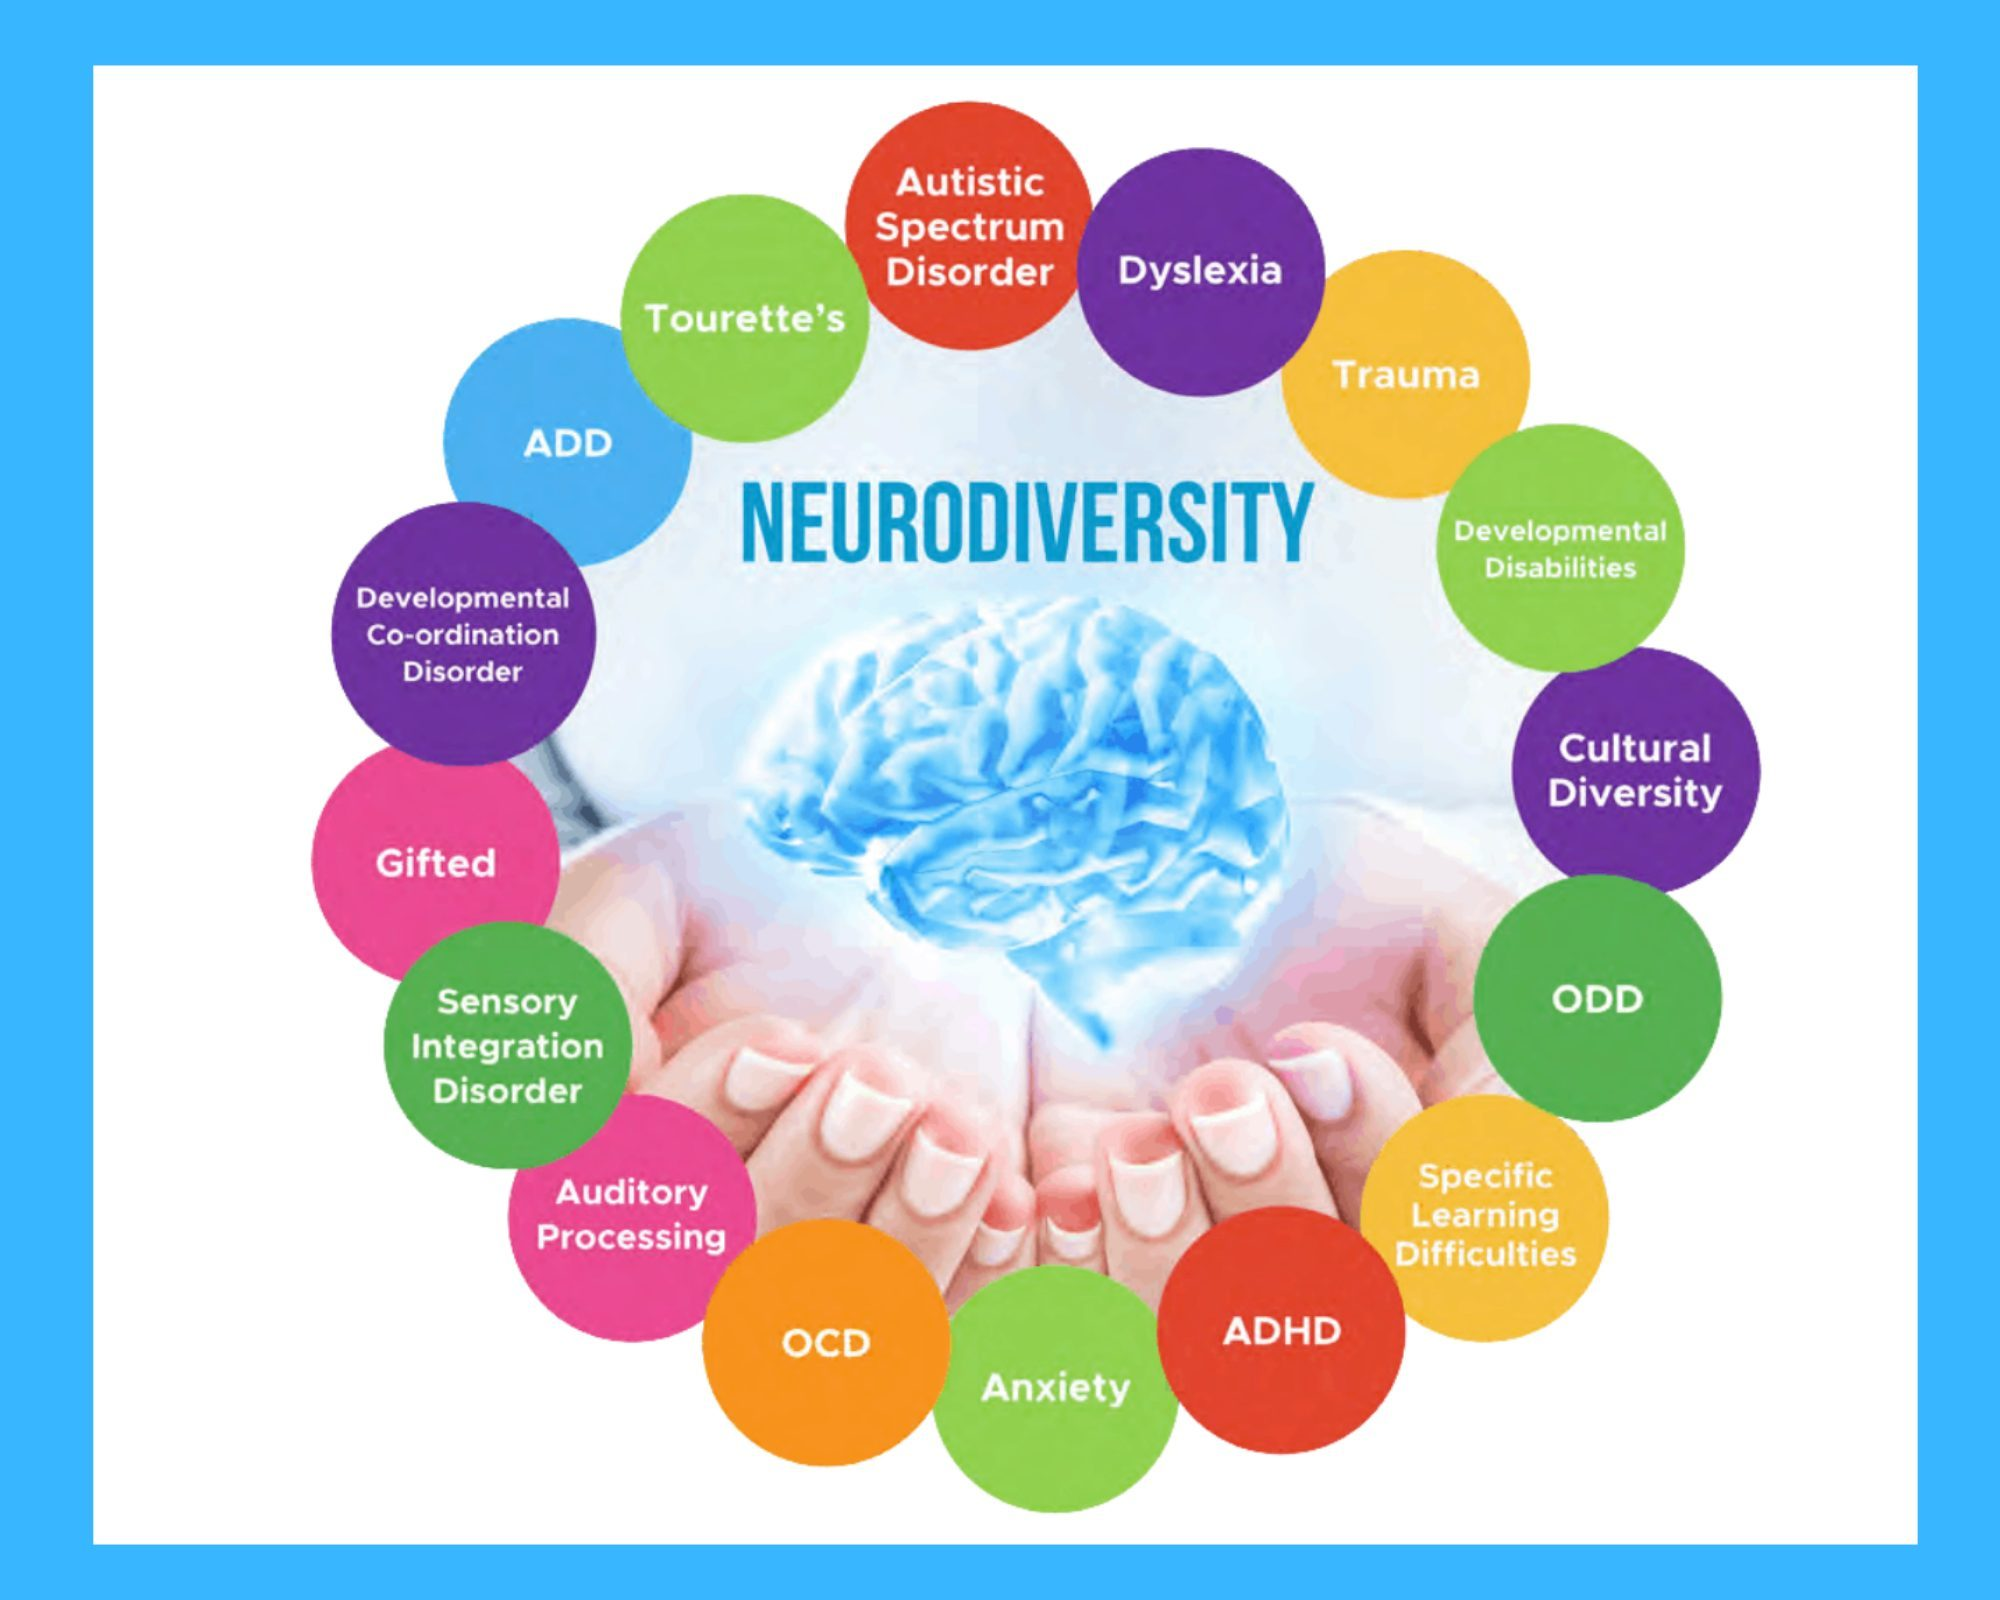 Neurodiversity image with open hands with brain inside hands all surrounded by a circle of definitions